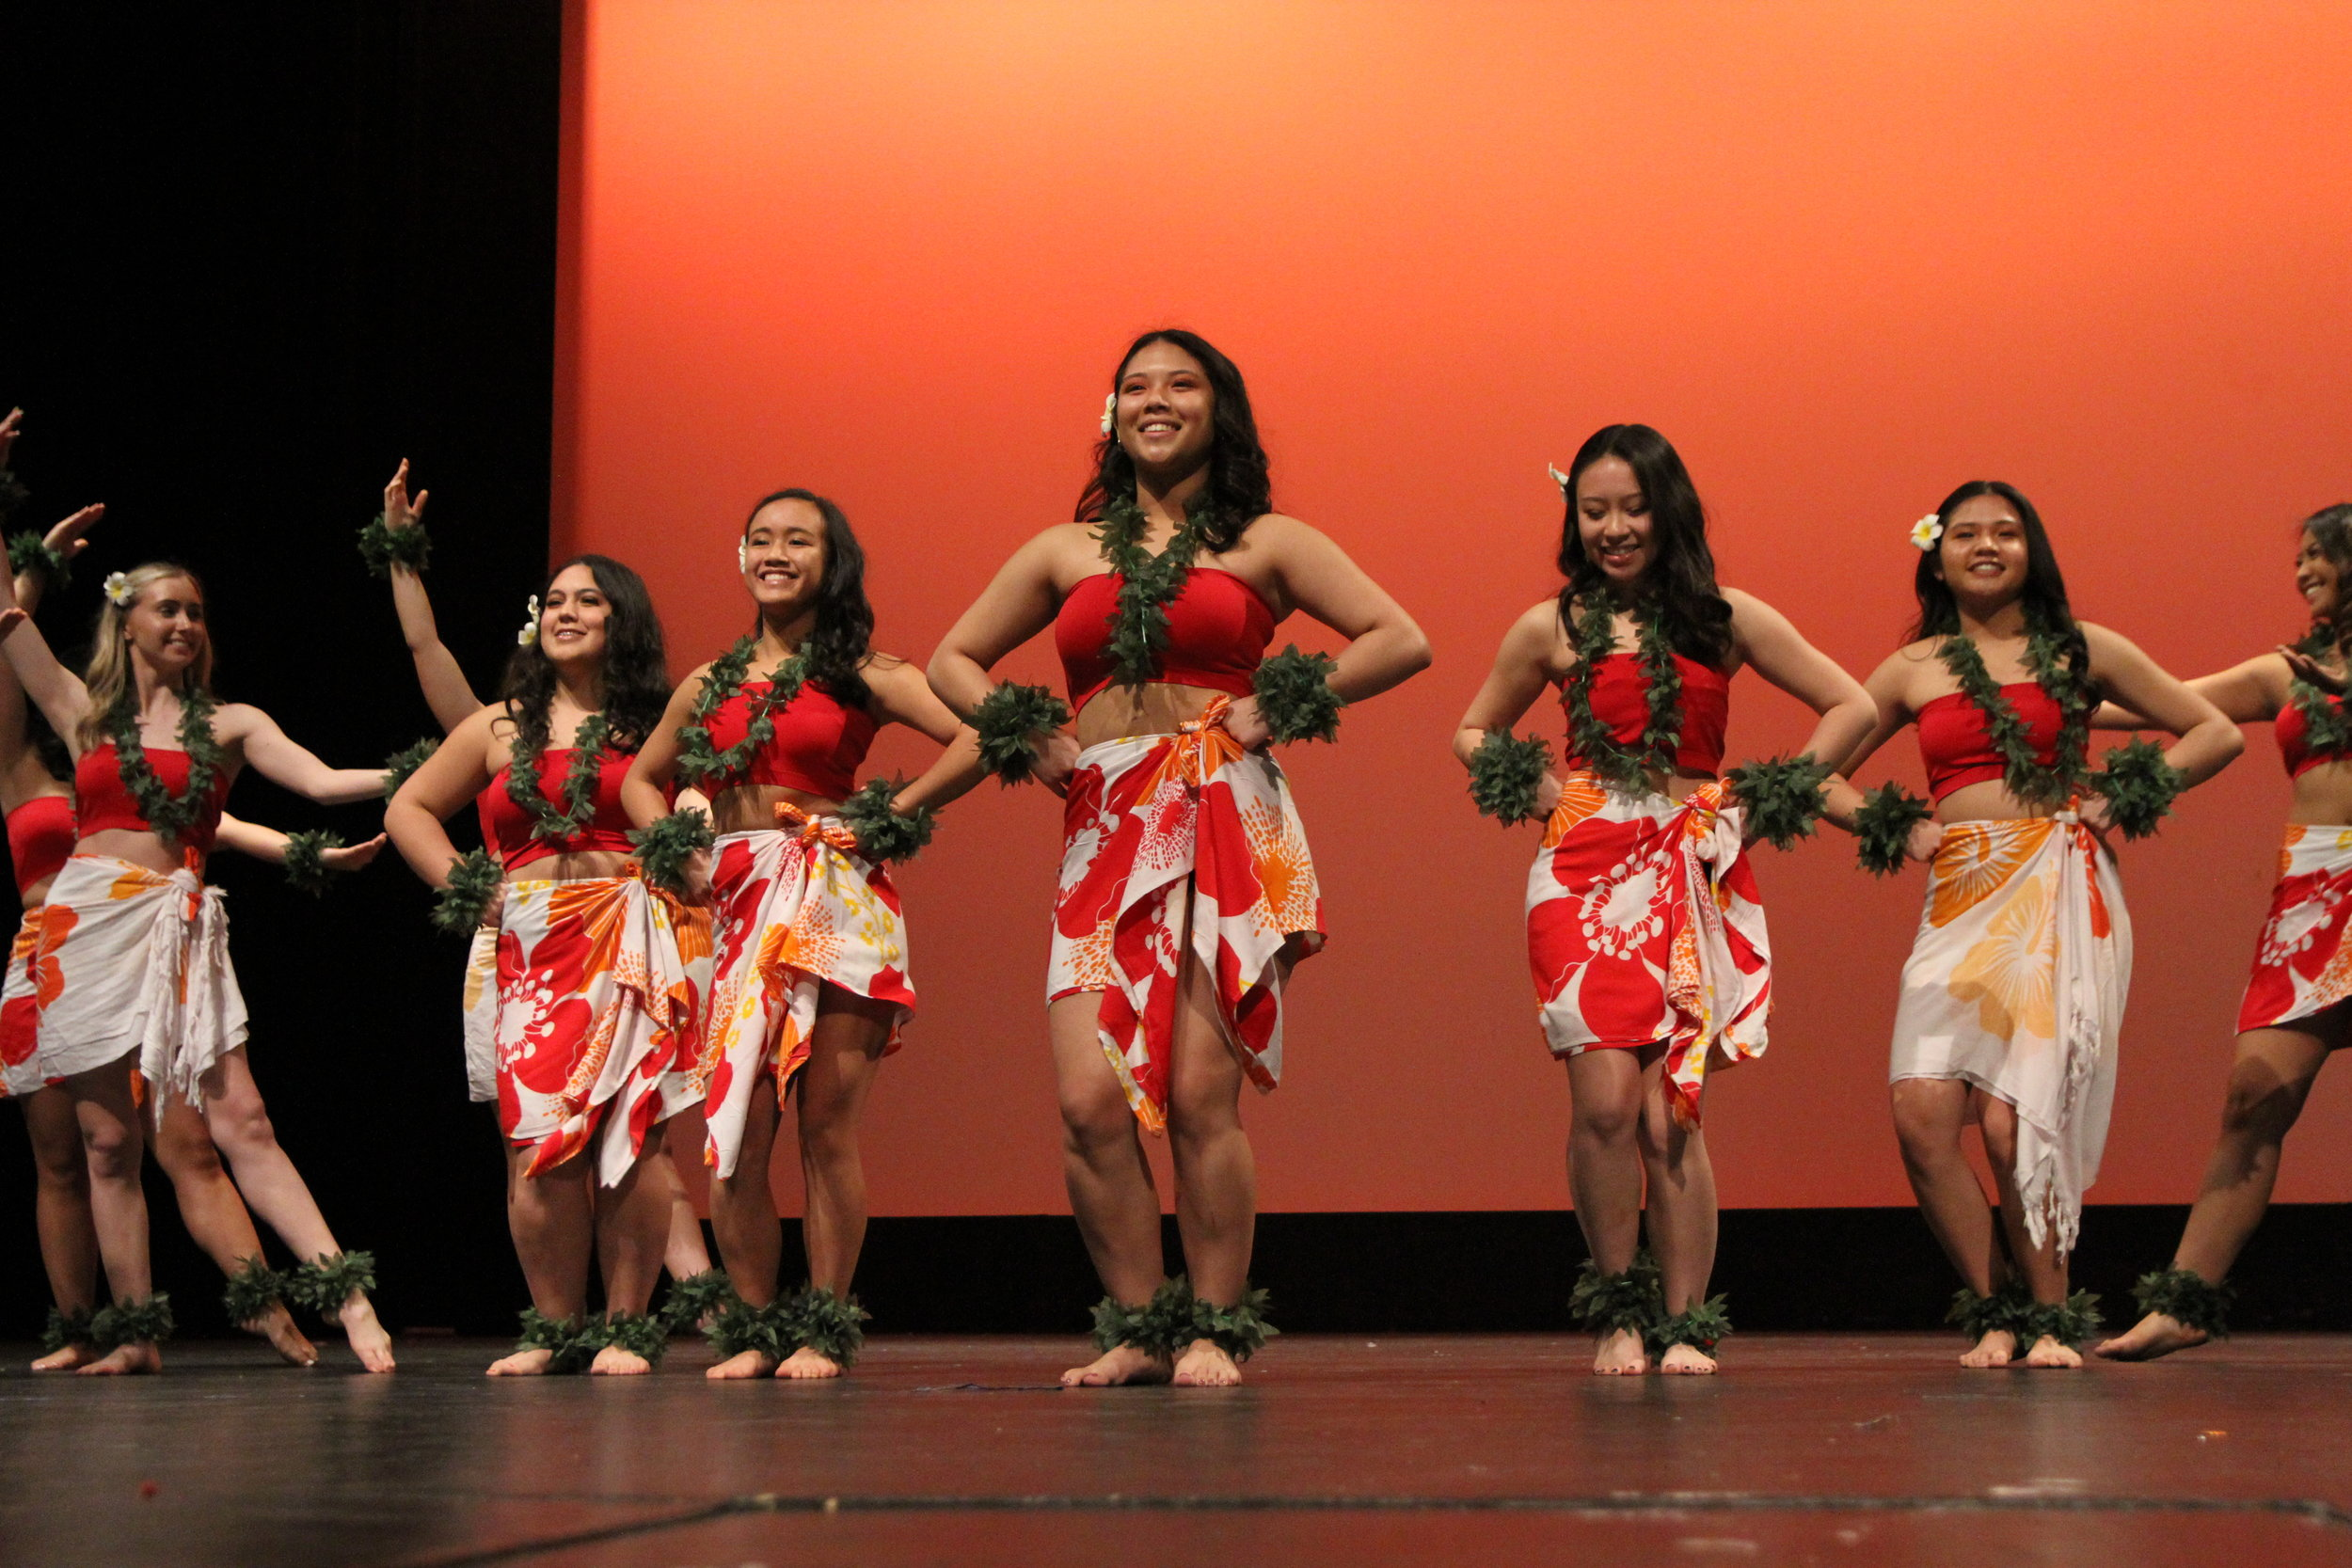 Not to overshadow the women, however, who come out to move their hips in traditional Hawaiian skirts